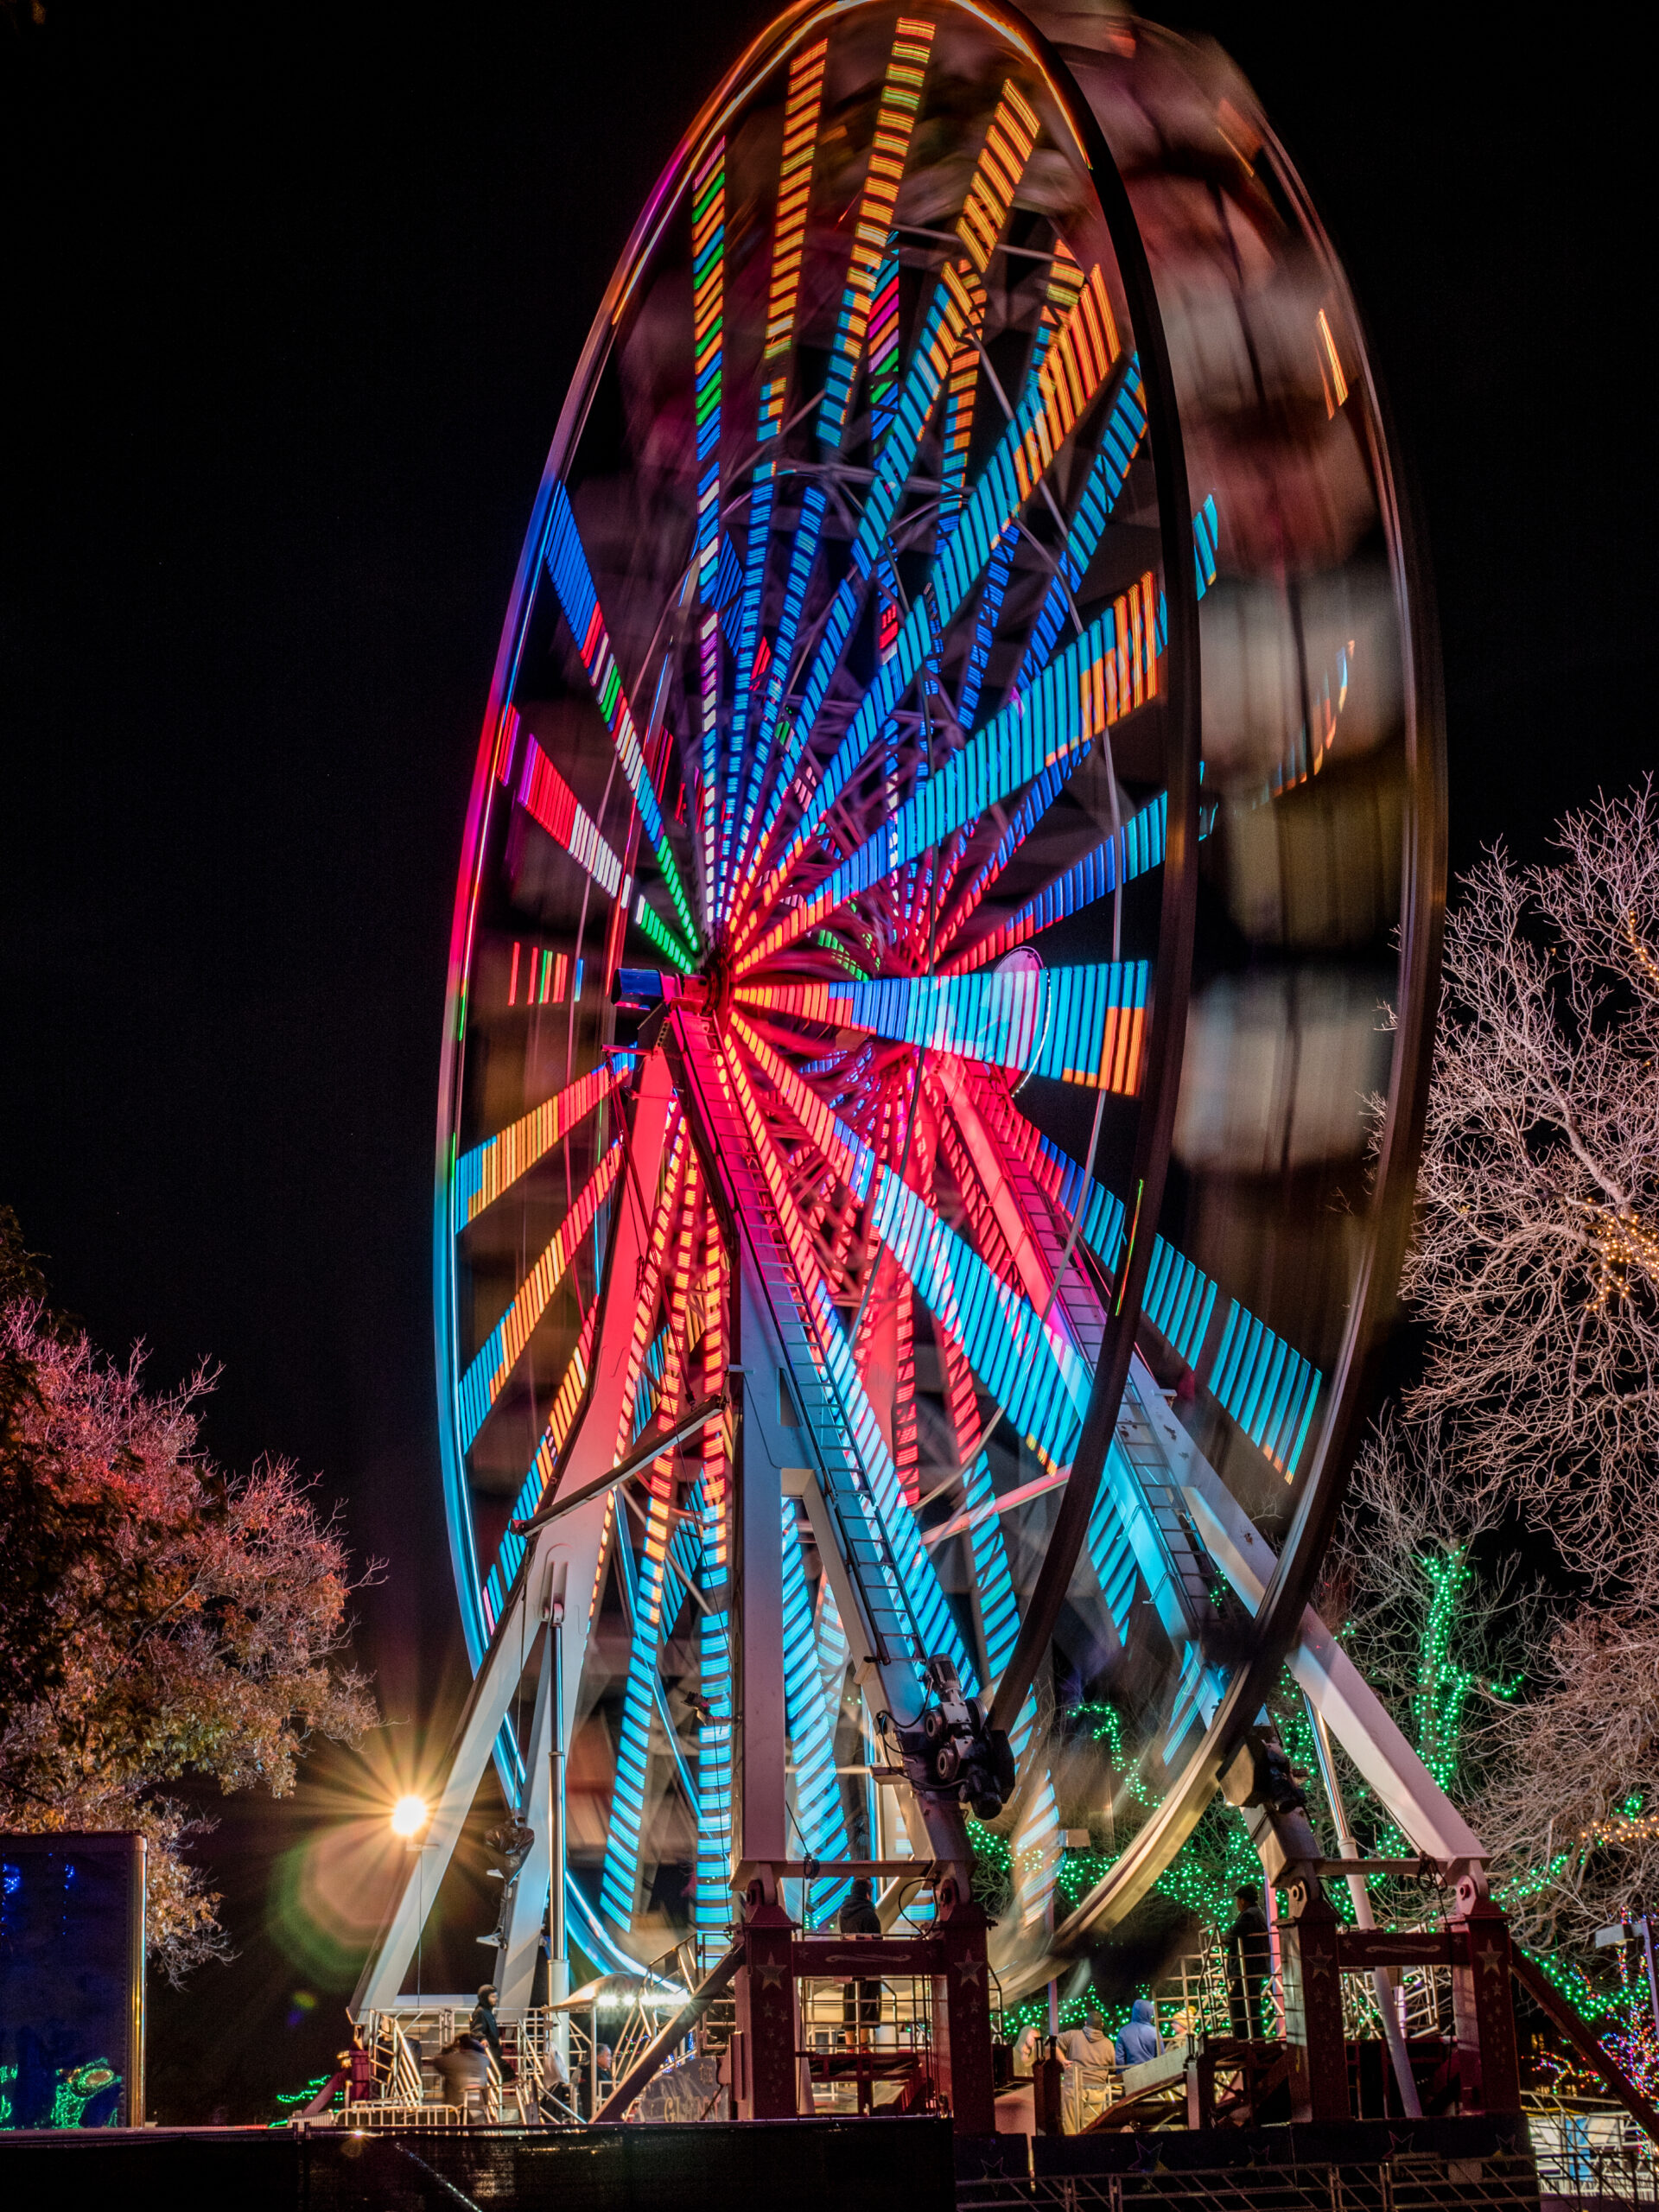 Zilker Park Ferris Wheel at Christmastime